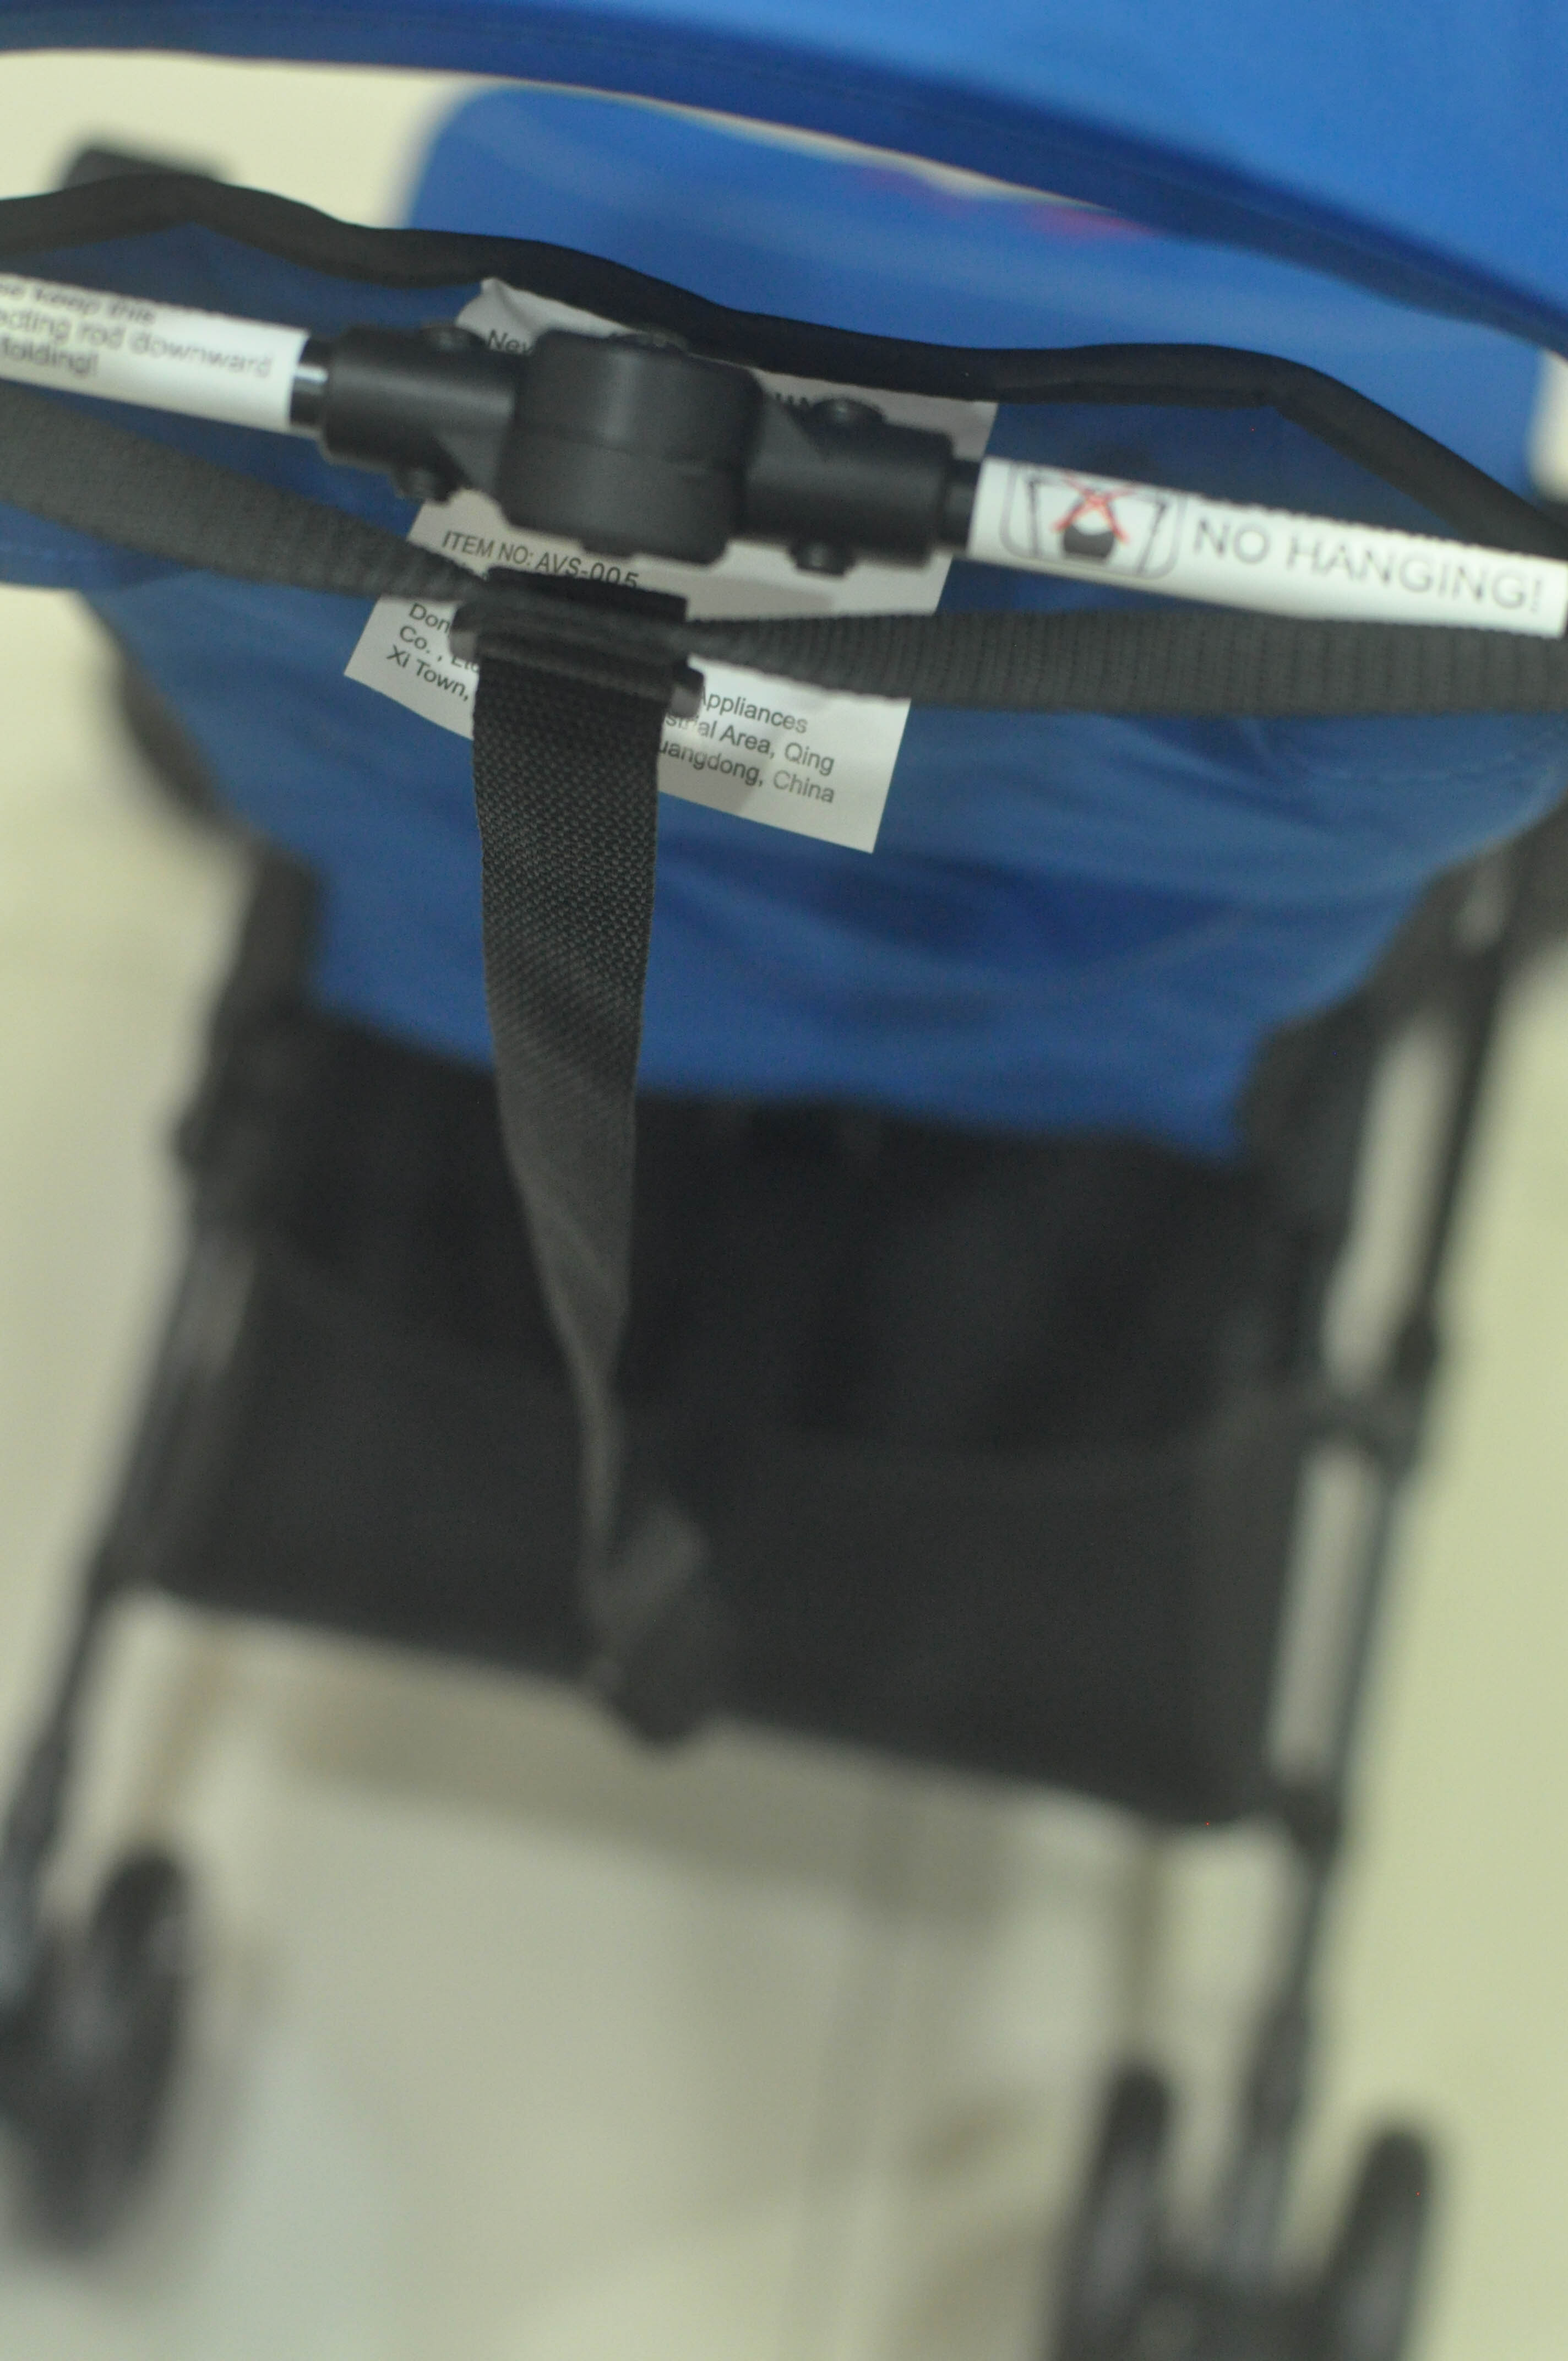 akeeva alvis pocket stroller philippines no hanging on the hinge